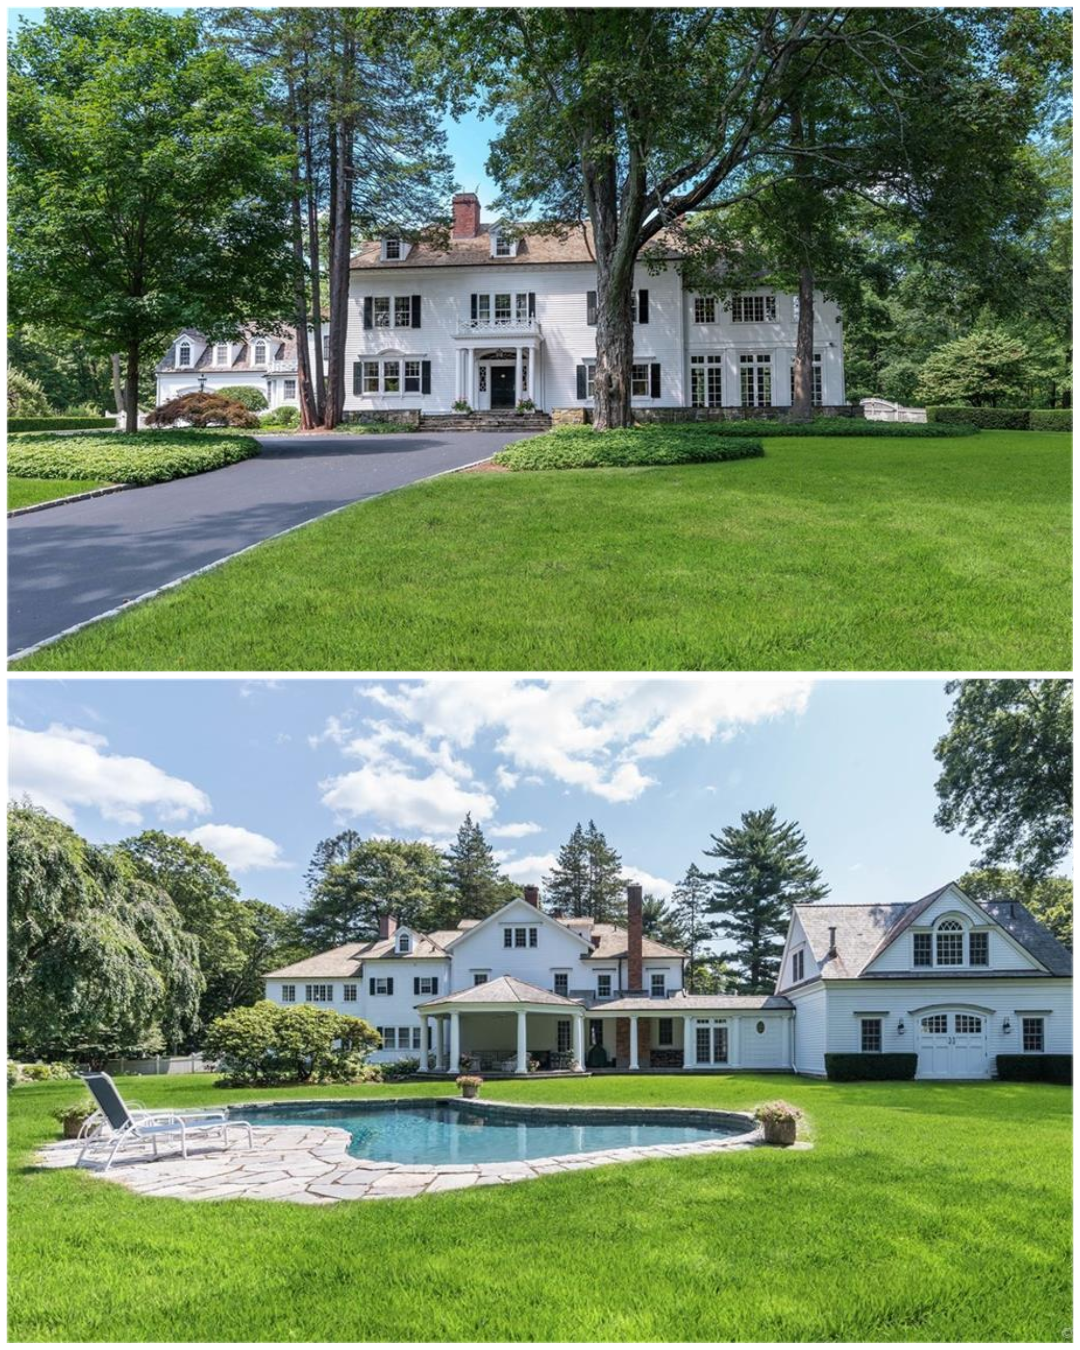 Considered One Of The Most Admired And Beloved Homes In All Of New Canaan This Iconic Masterpiece Is Stately Gr Mansions Luxury Real Estate Mansions For Sale